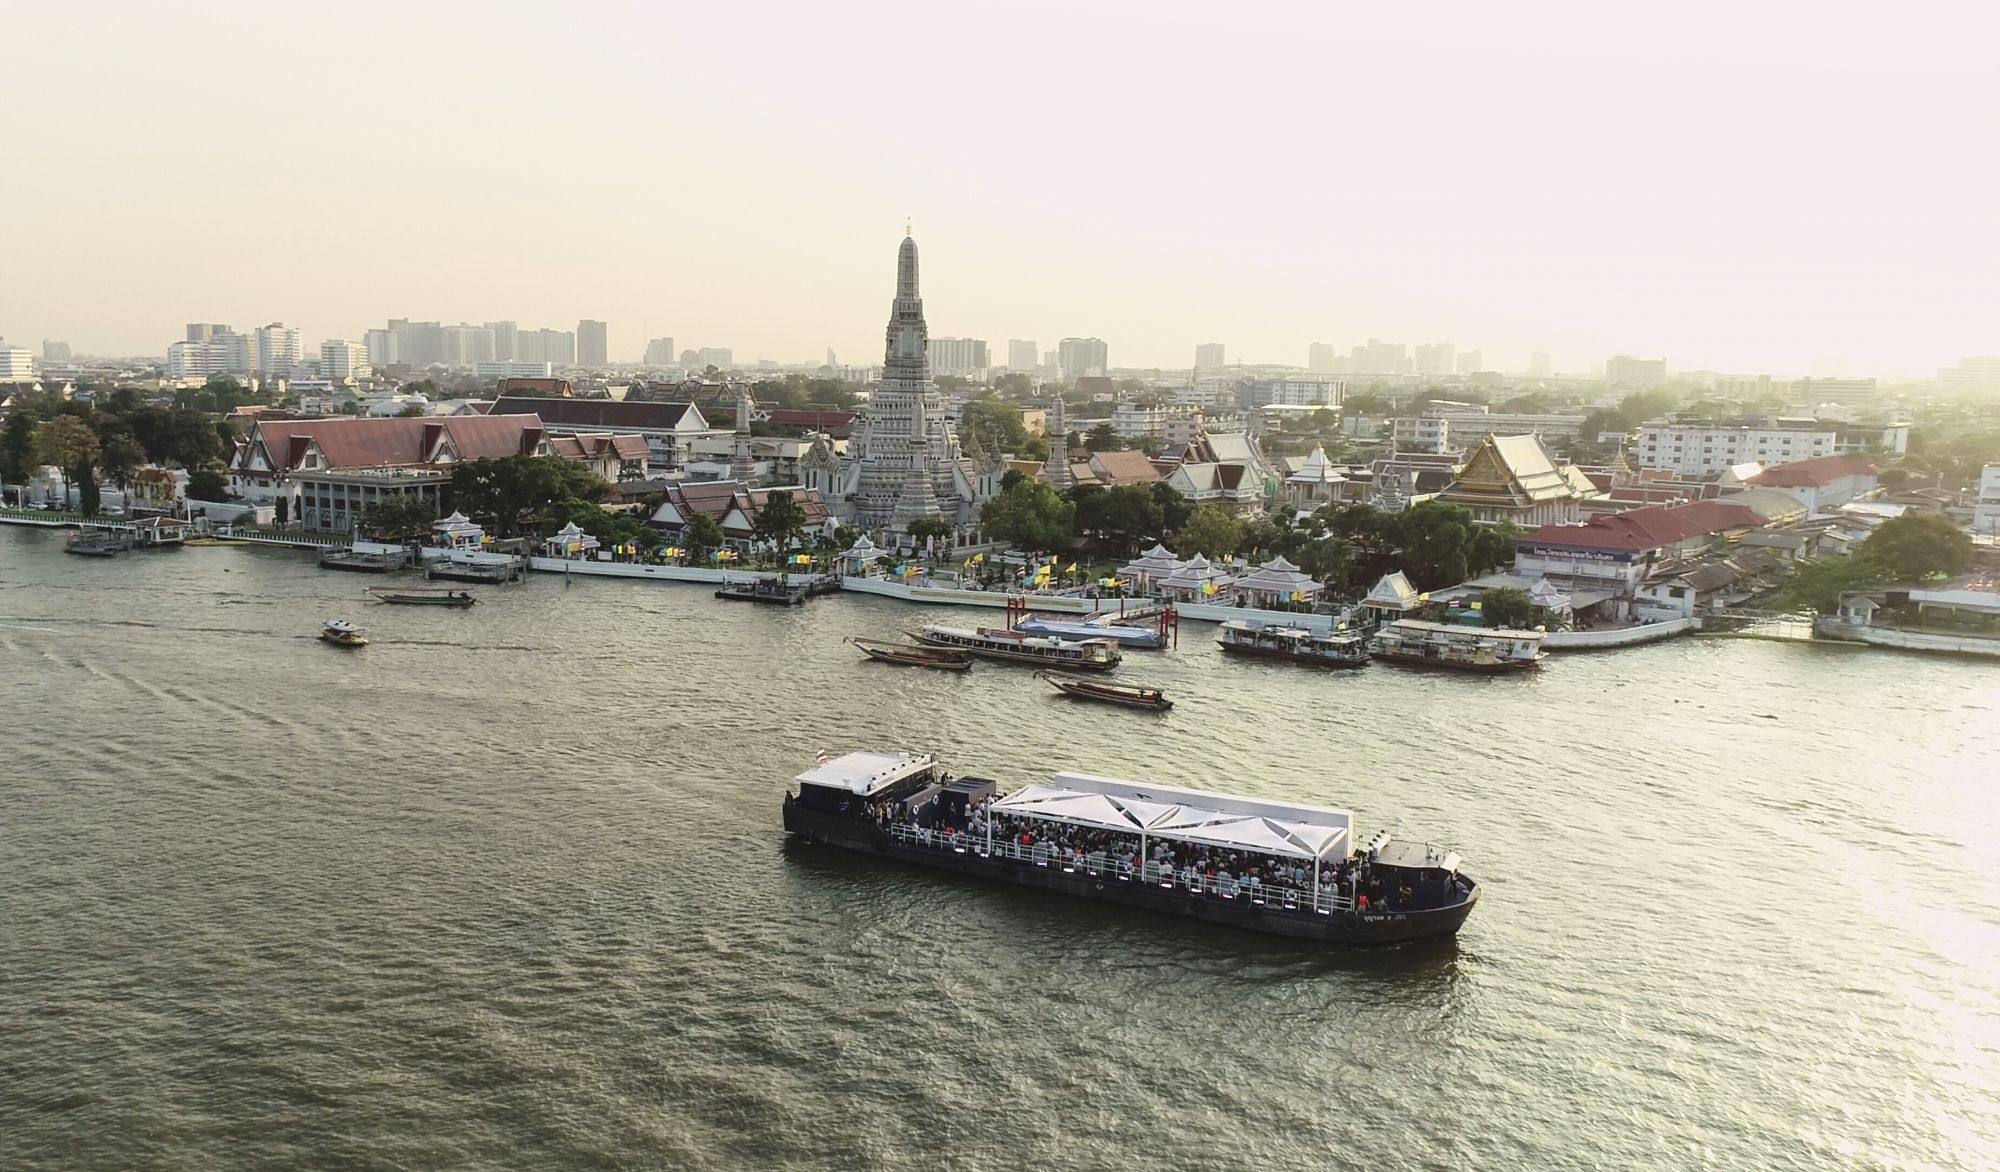 Art With Sansiri: Miquel Barcelo's Live Performance On The Chao Phraya River In Bangkok